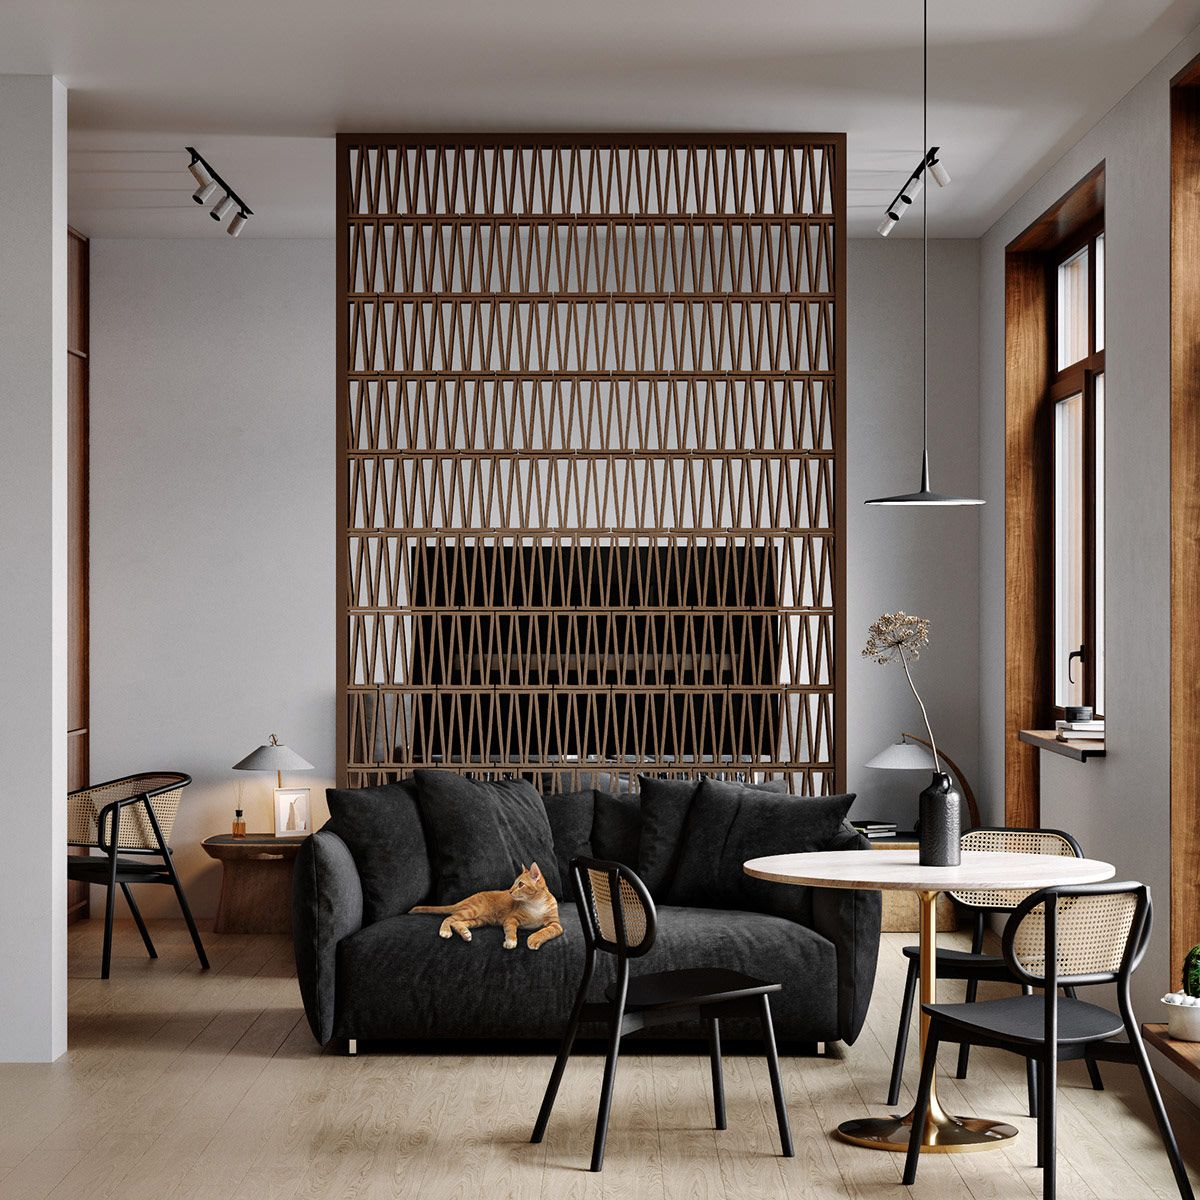 Chic Small Interiors That Make You Want To Live The Studio Life In 2020 Sofas For Small Spaces Small Space Interior Design Interior